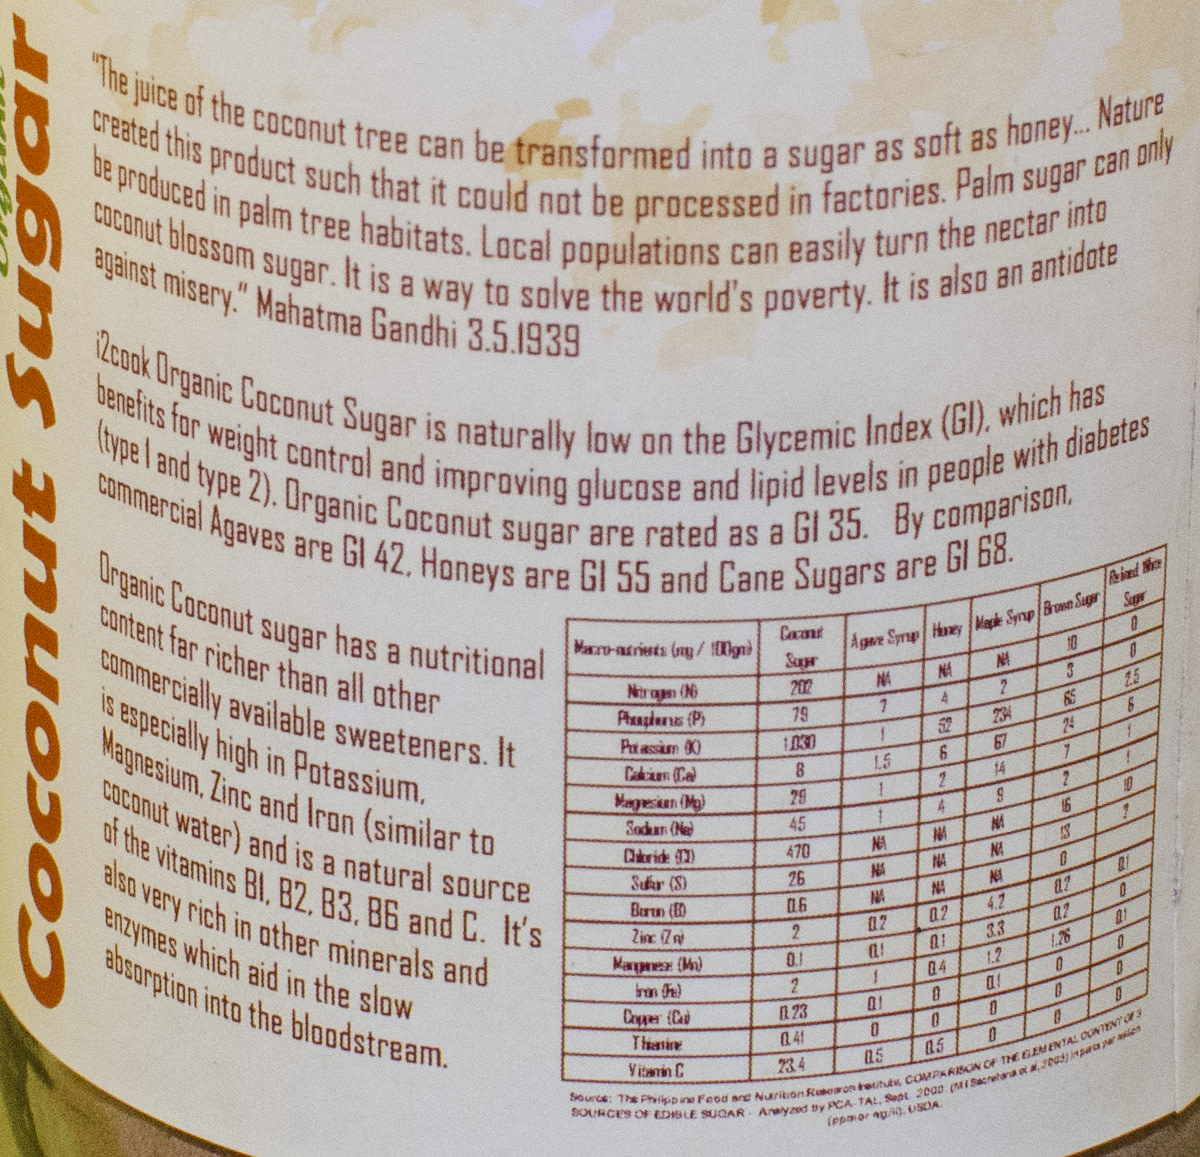 Coconut sugar claims to have a much lower glycemic index than other sugars.